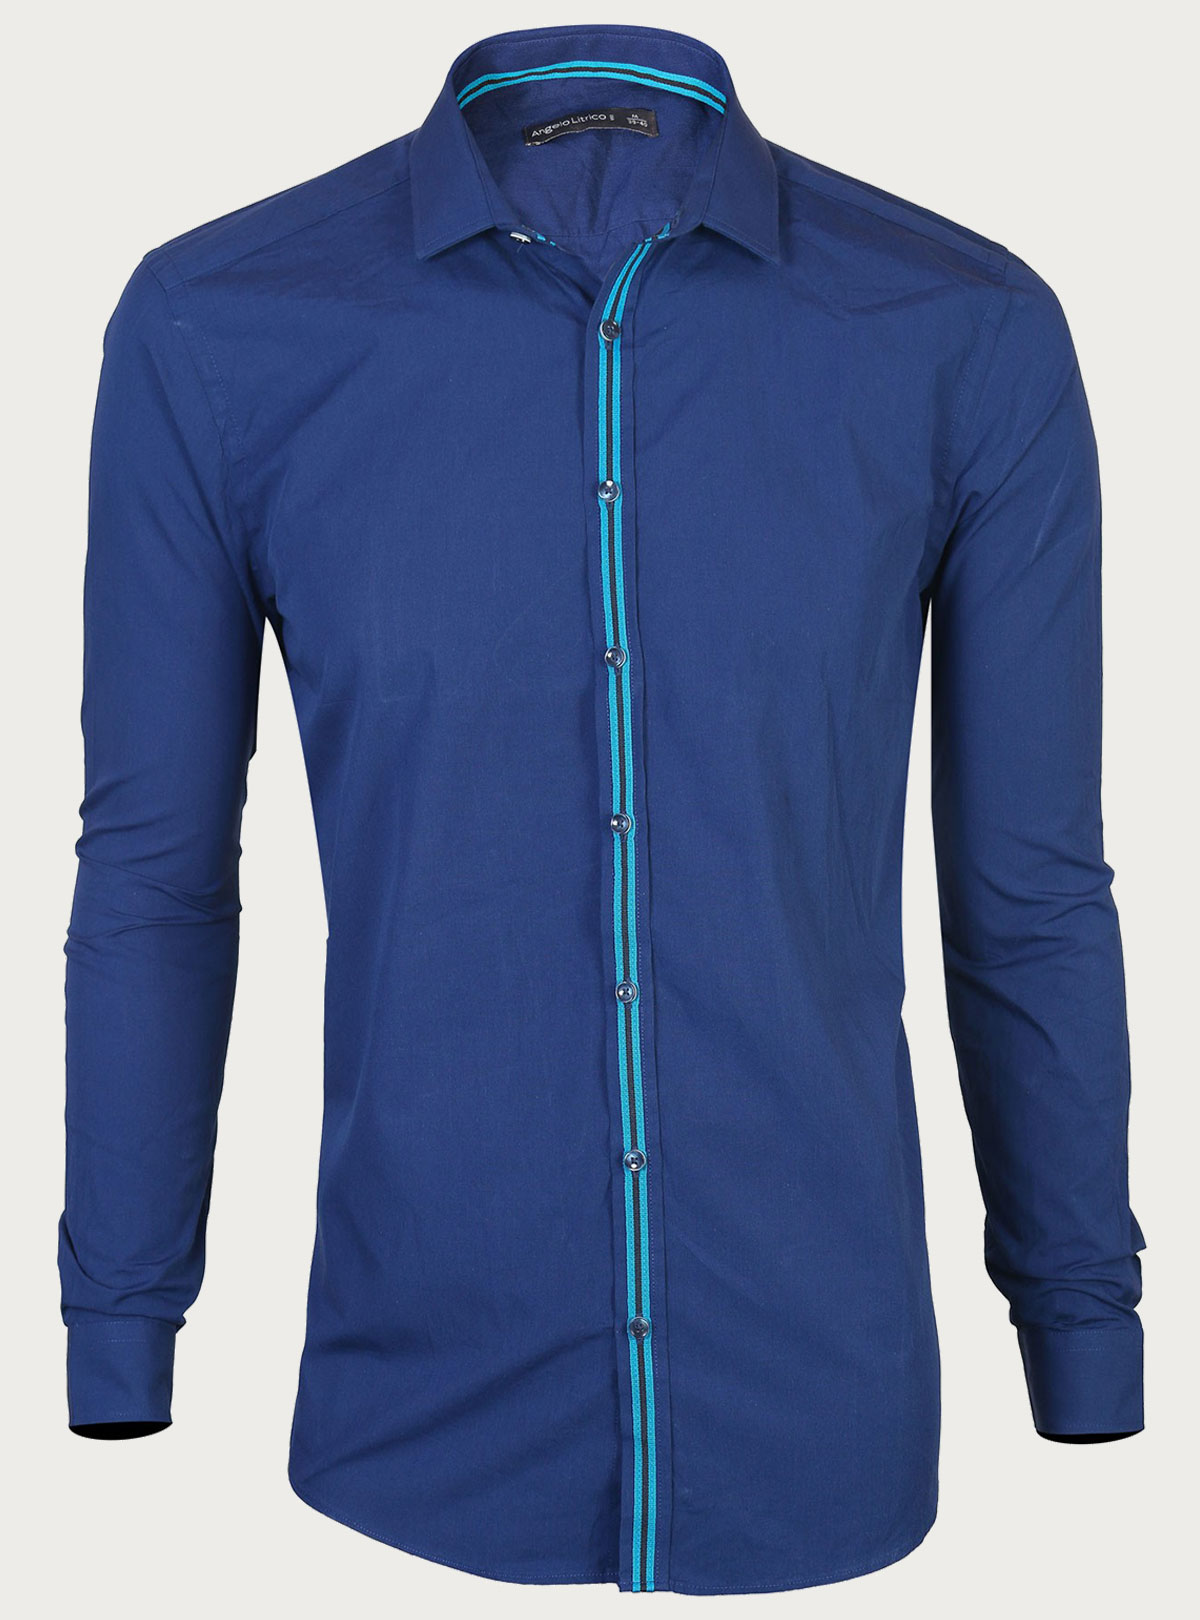 STYLISH CASUAL SHIRT BY - ANGELO LITRICO